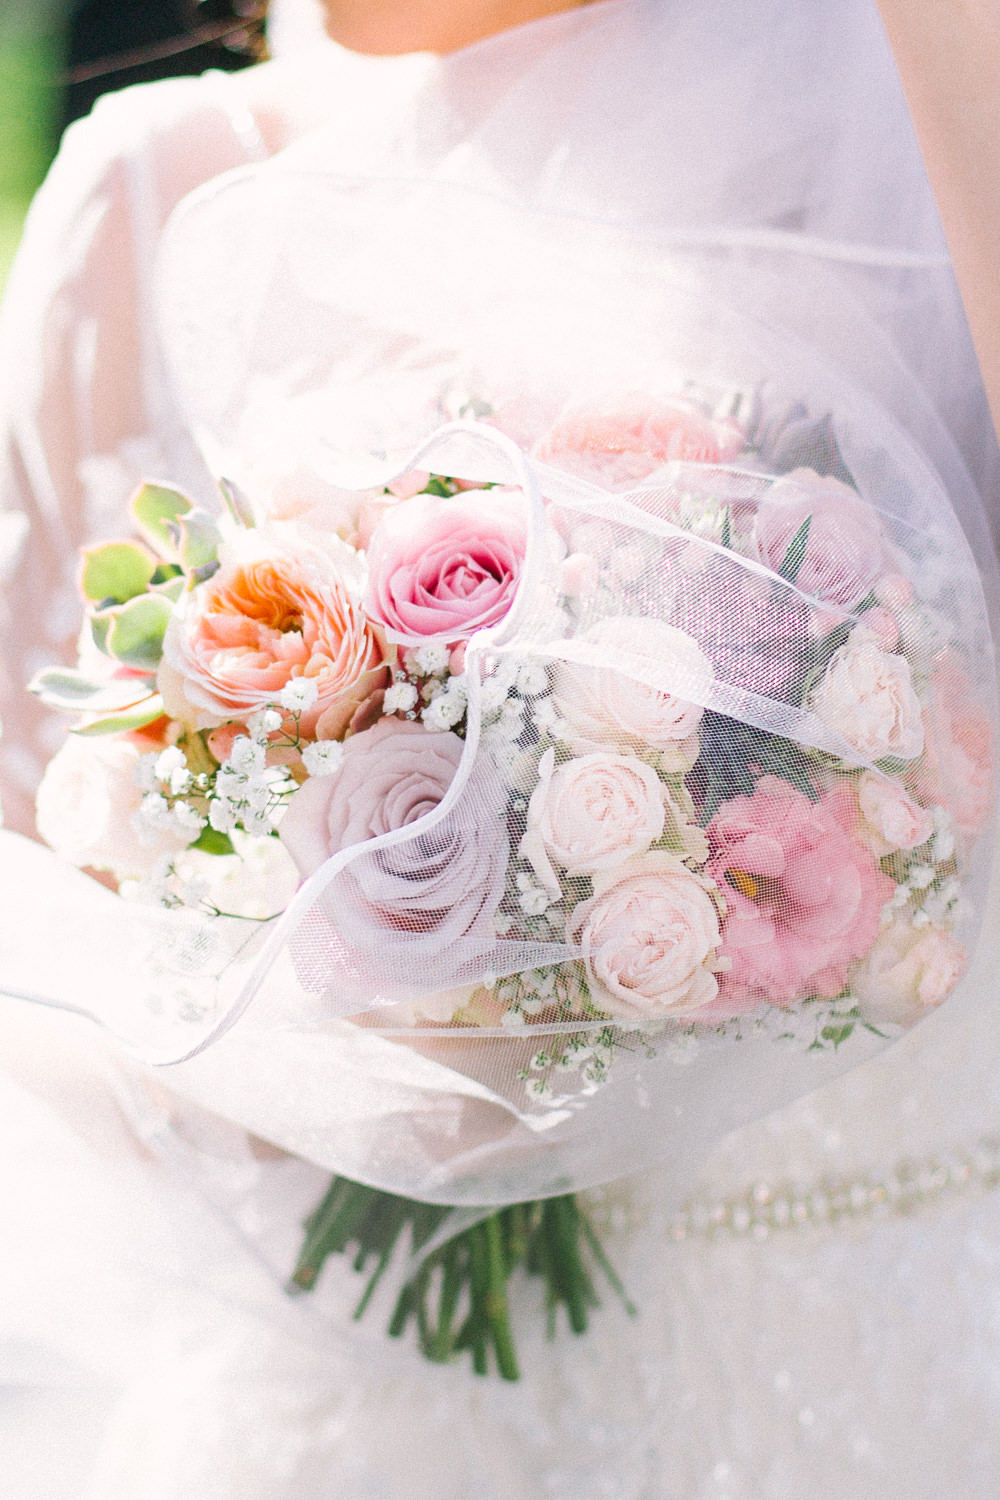 Bride Bridal Blush Pastel Bouquet Veil Barn At Barra Castle Wedding Ceranna Photography